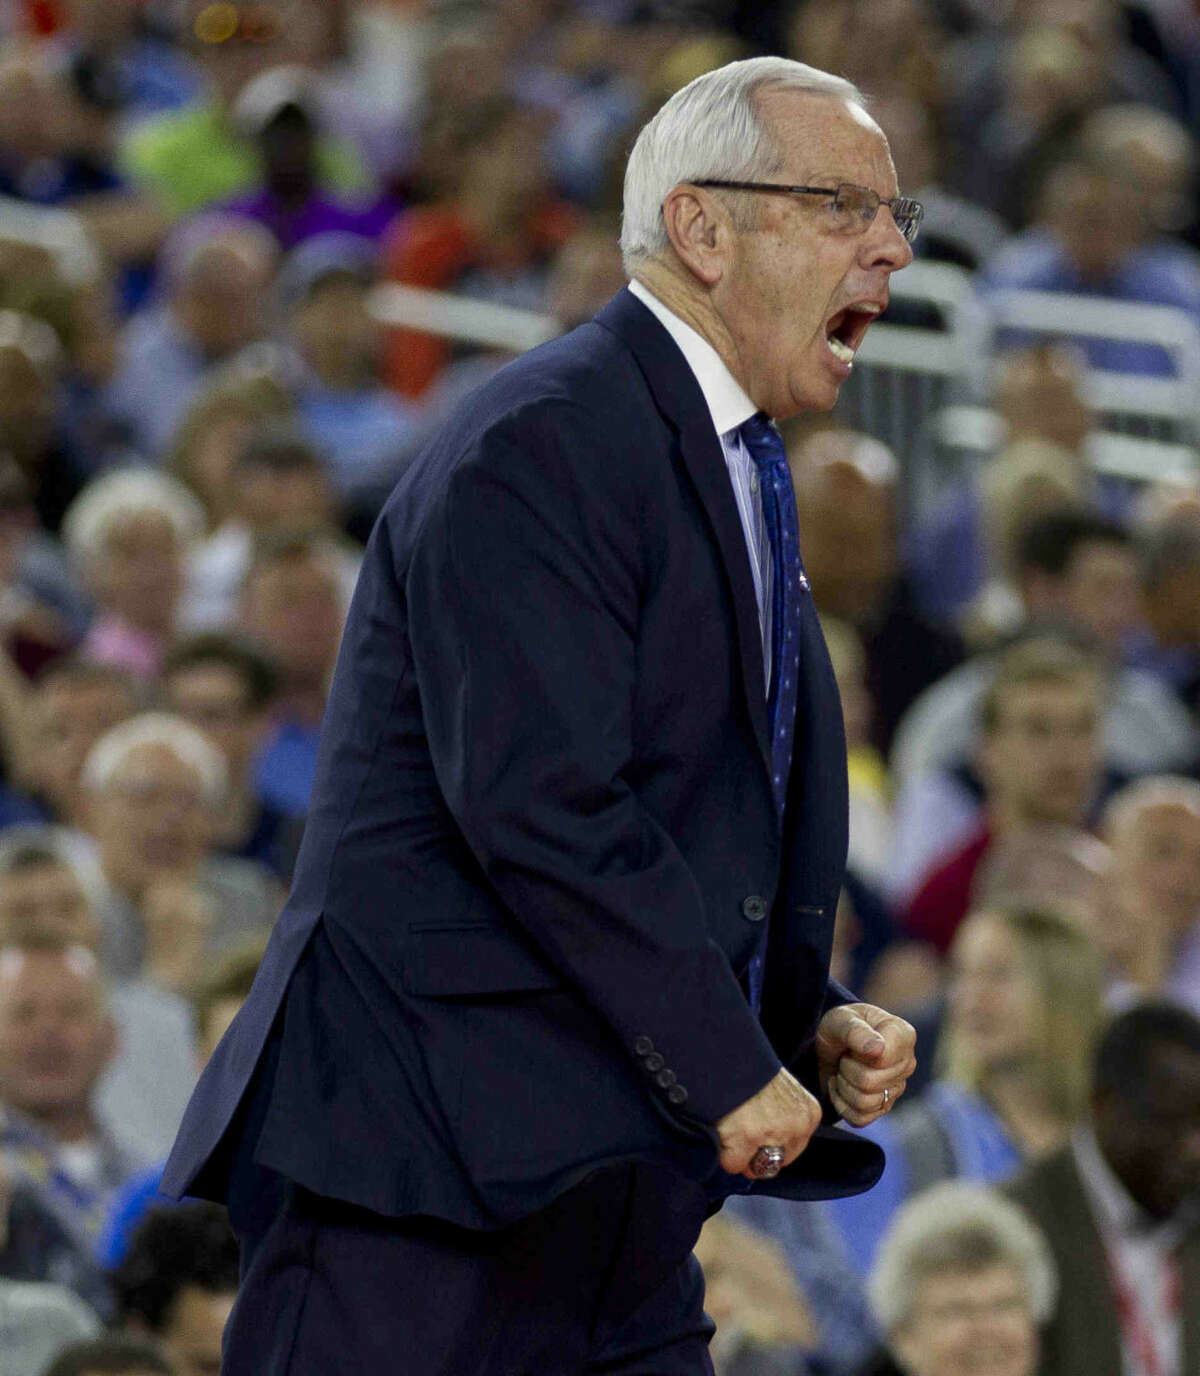 North Carolina head coach Roy Williams reacts to a call during the first half of an NCAA Final Four semifinal college basketball game Saturday, April 2, 2016, at NRG Stadium in Houston. If Williams wins Monday against Villanova, he will be one of six coaches in NCAA Men's Basketball history to win three or more national titles.